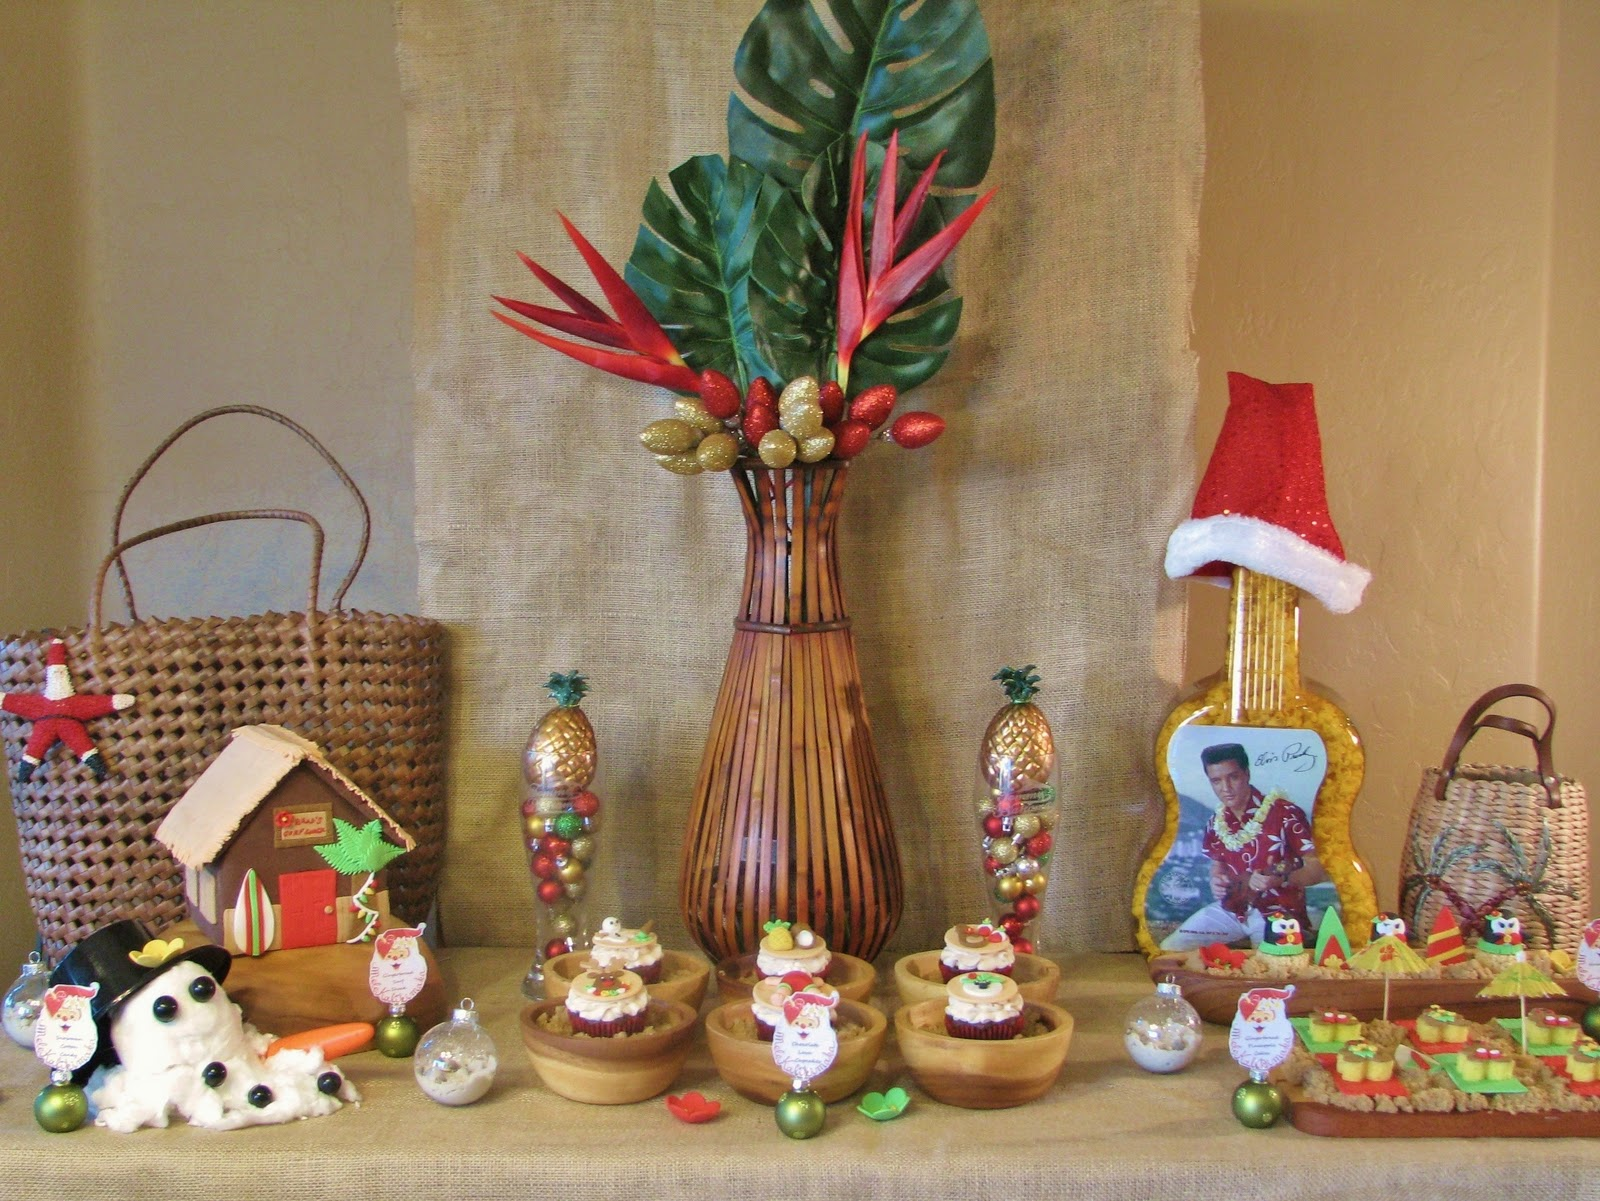 i focused on tropical hawaiian inspired decor by pairing traditional christmas colors of red and green and some yellowsgolds for a pop - Hawaiian Merry Christmas Song